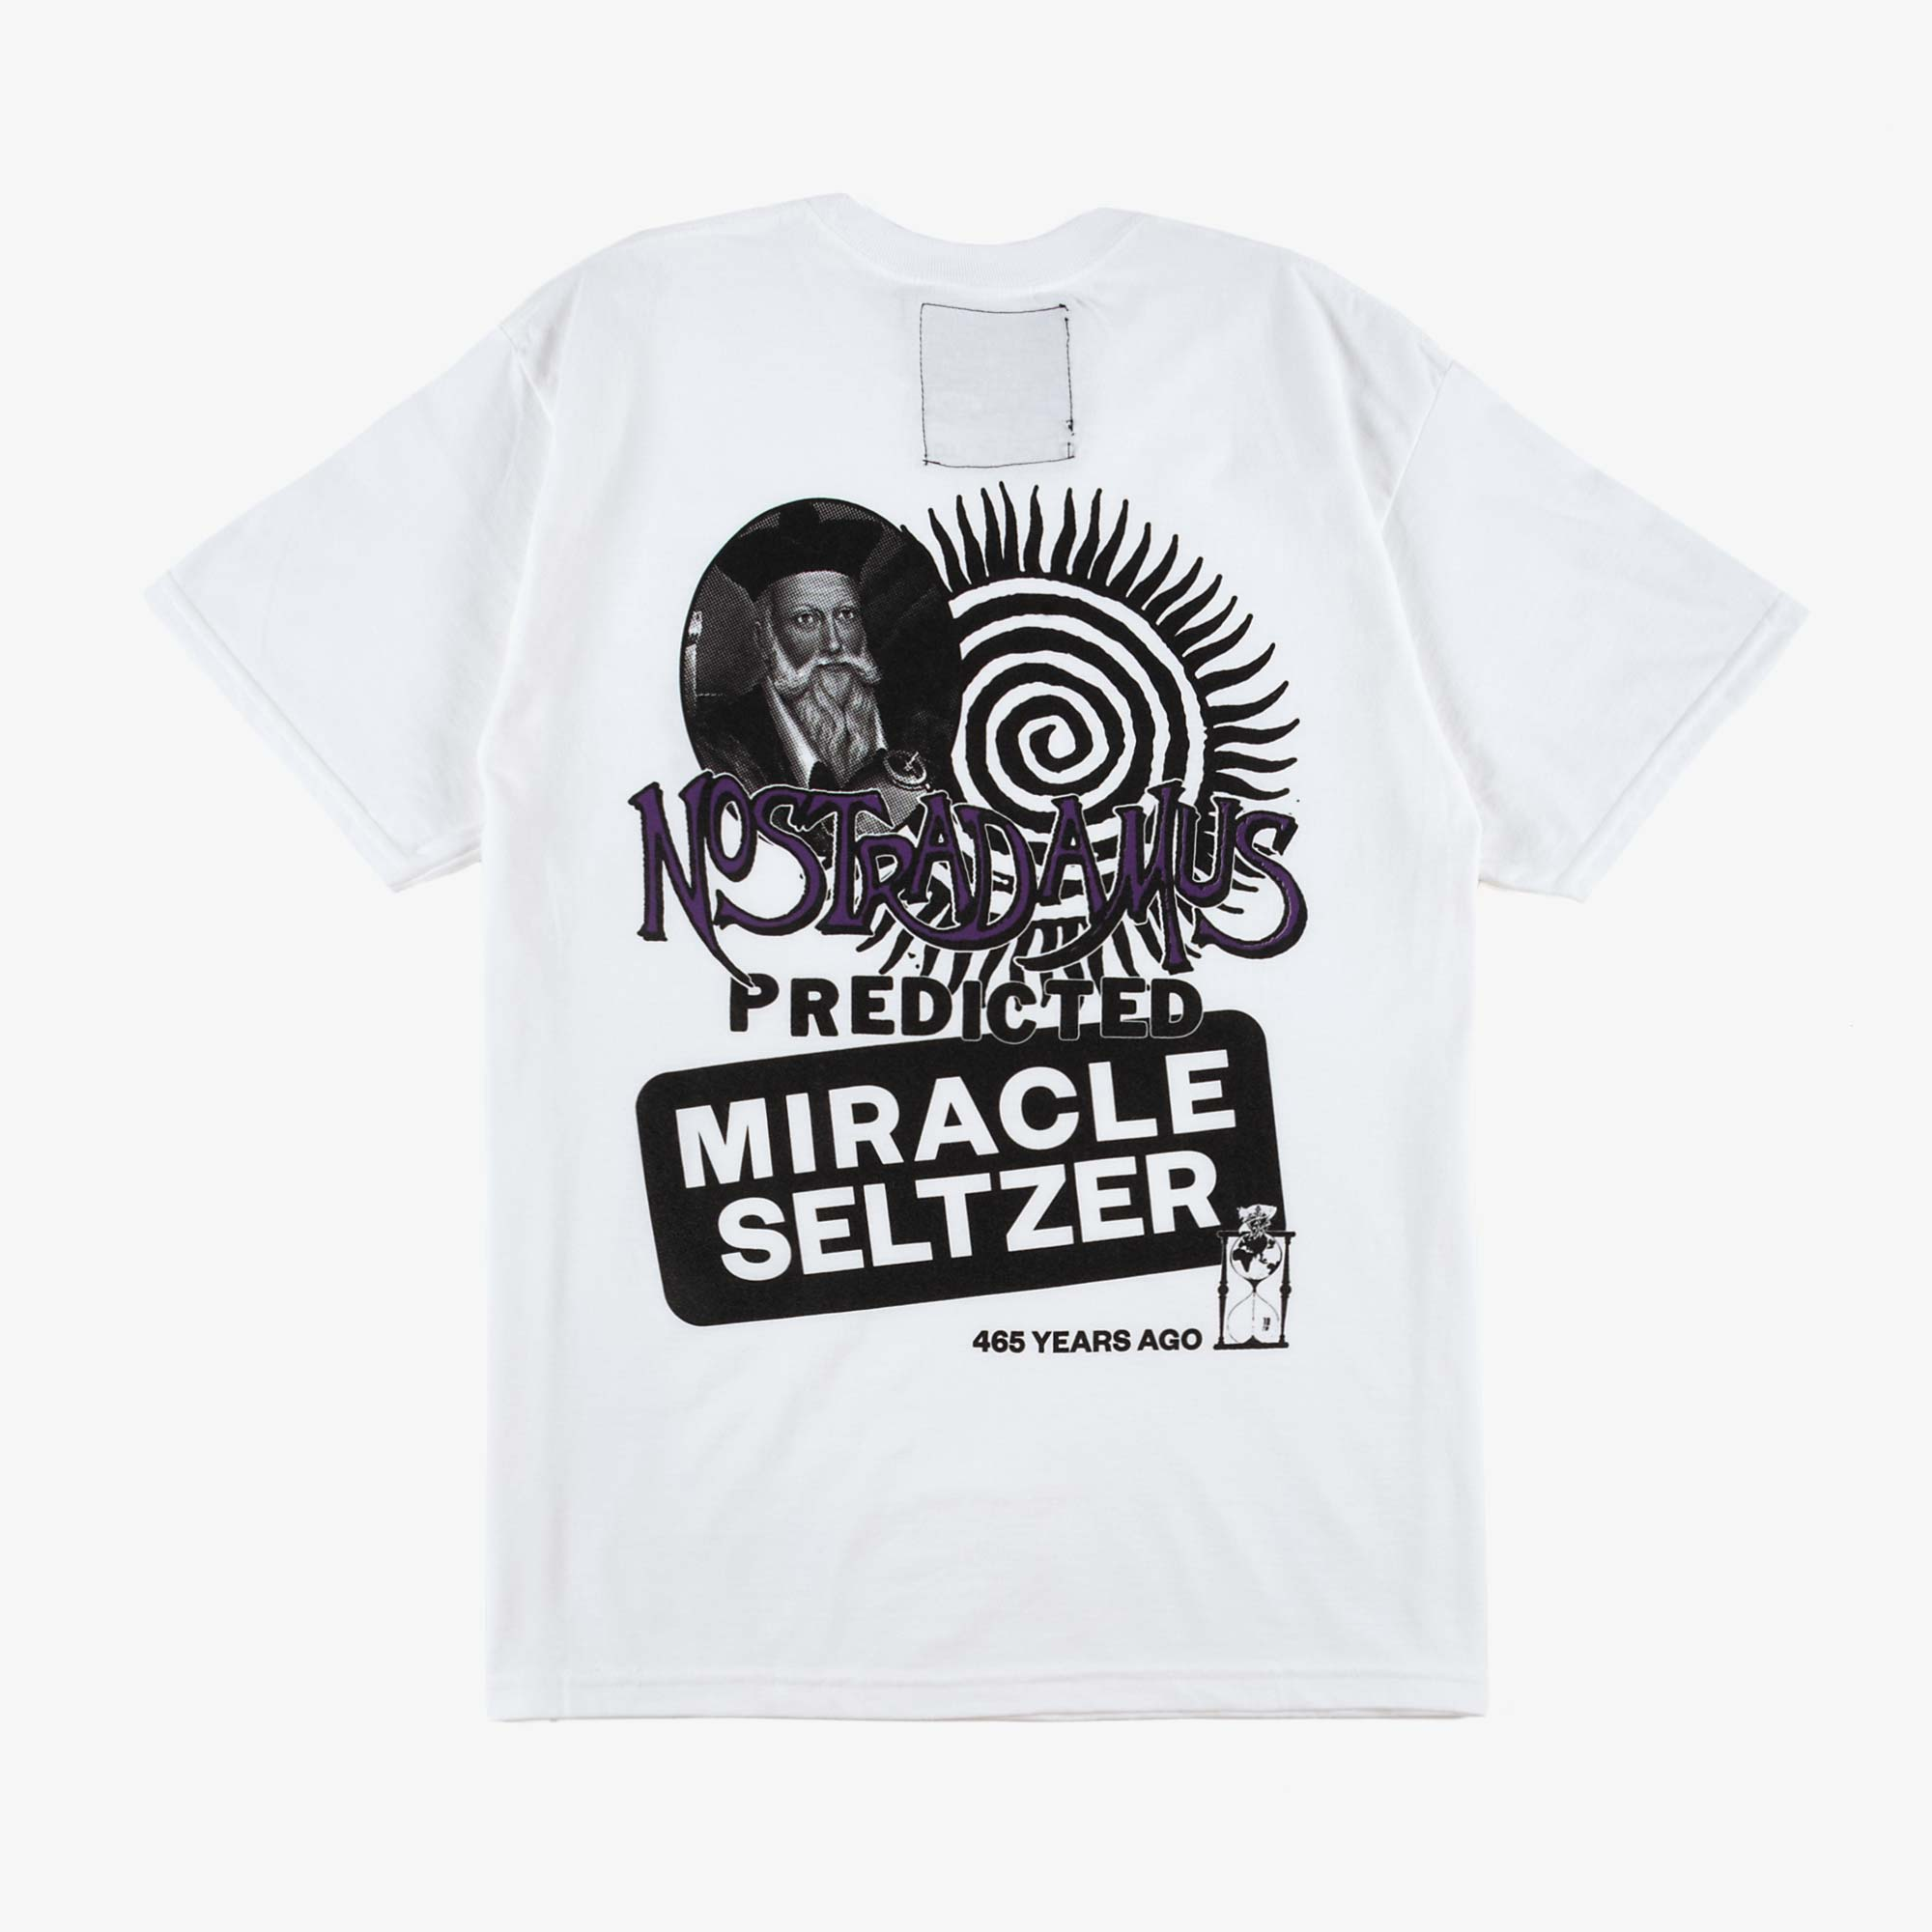 Miracle Seltzer The Nostradamus Tee - White 1